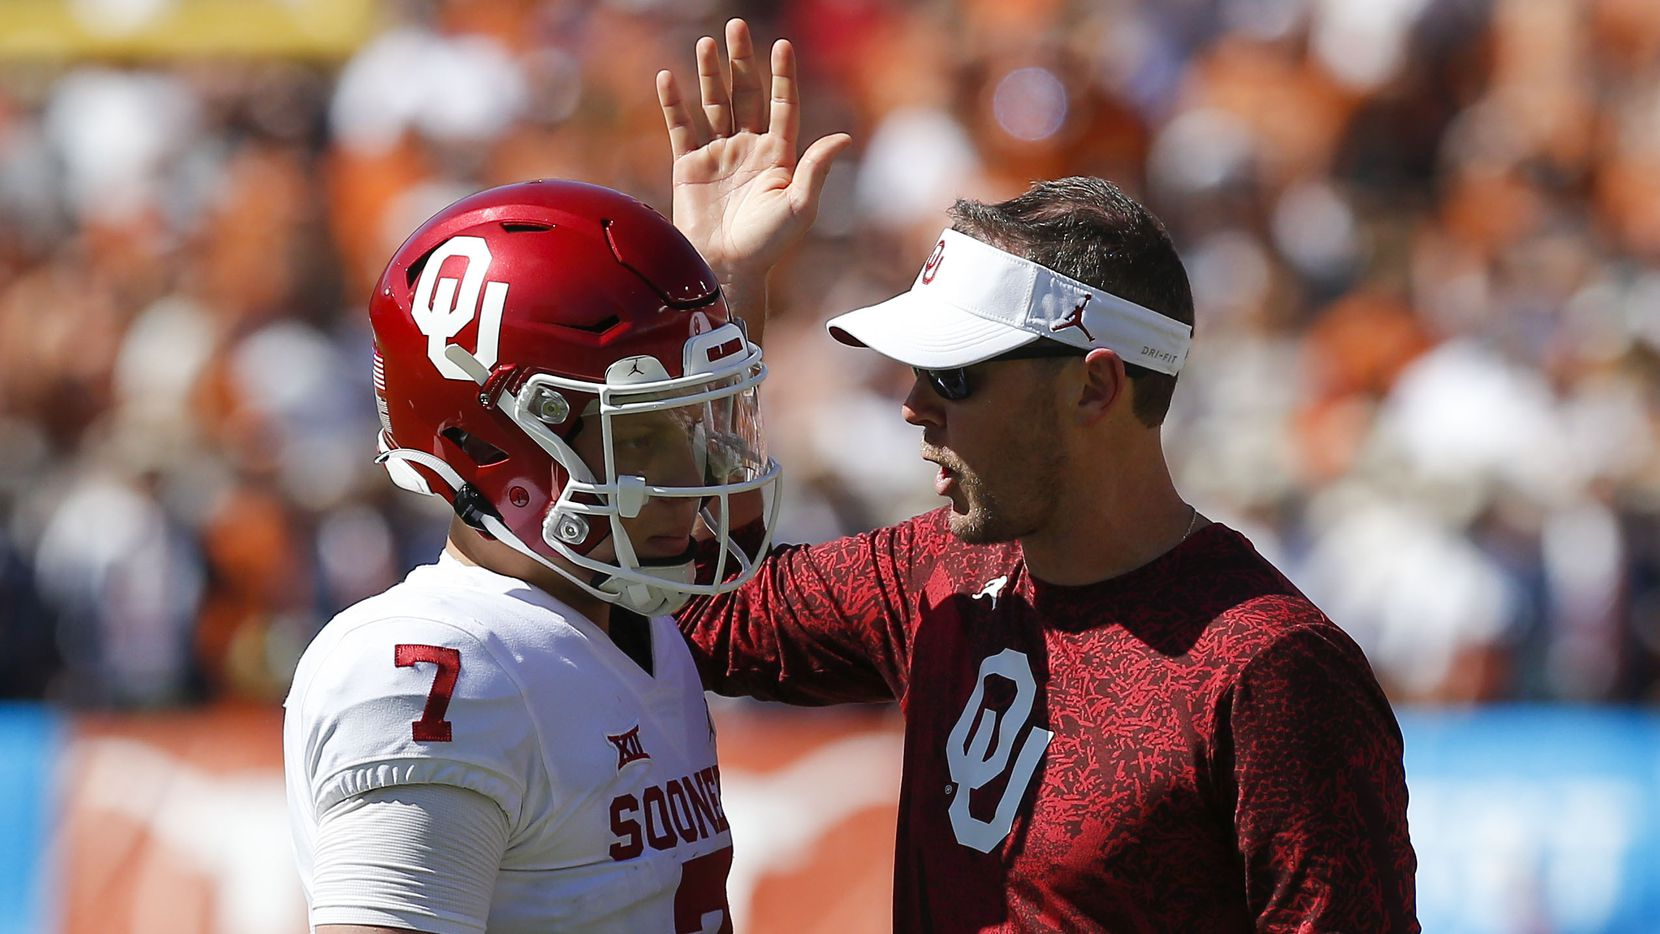 Oklahoma head coach Lincoln Riley reviews a play with Oklahoma quarterback Spencer Rattler (7) during the second half of an NCAA college football game against Texas at the Cotton Bowl in Fair Park, Saturday, October 9, 2021.